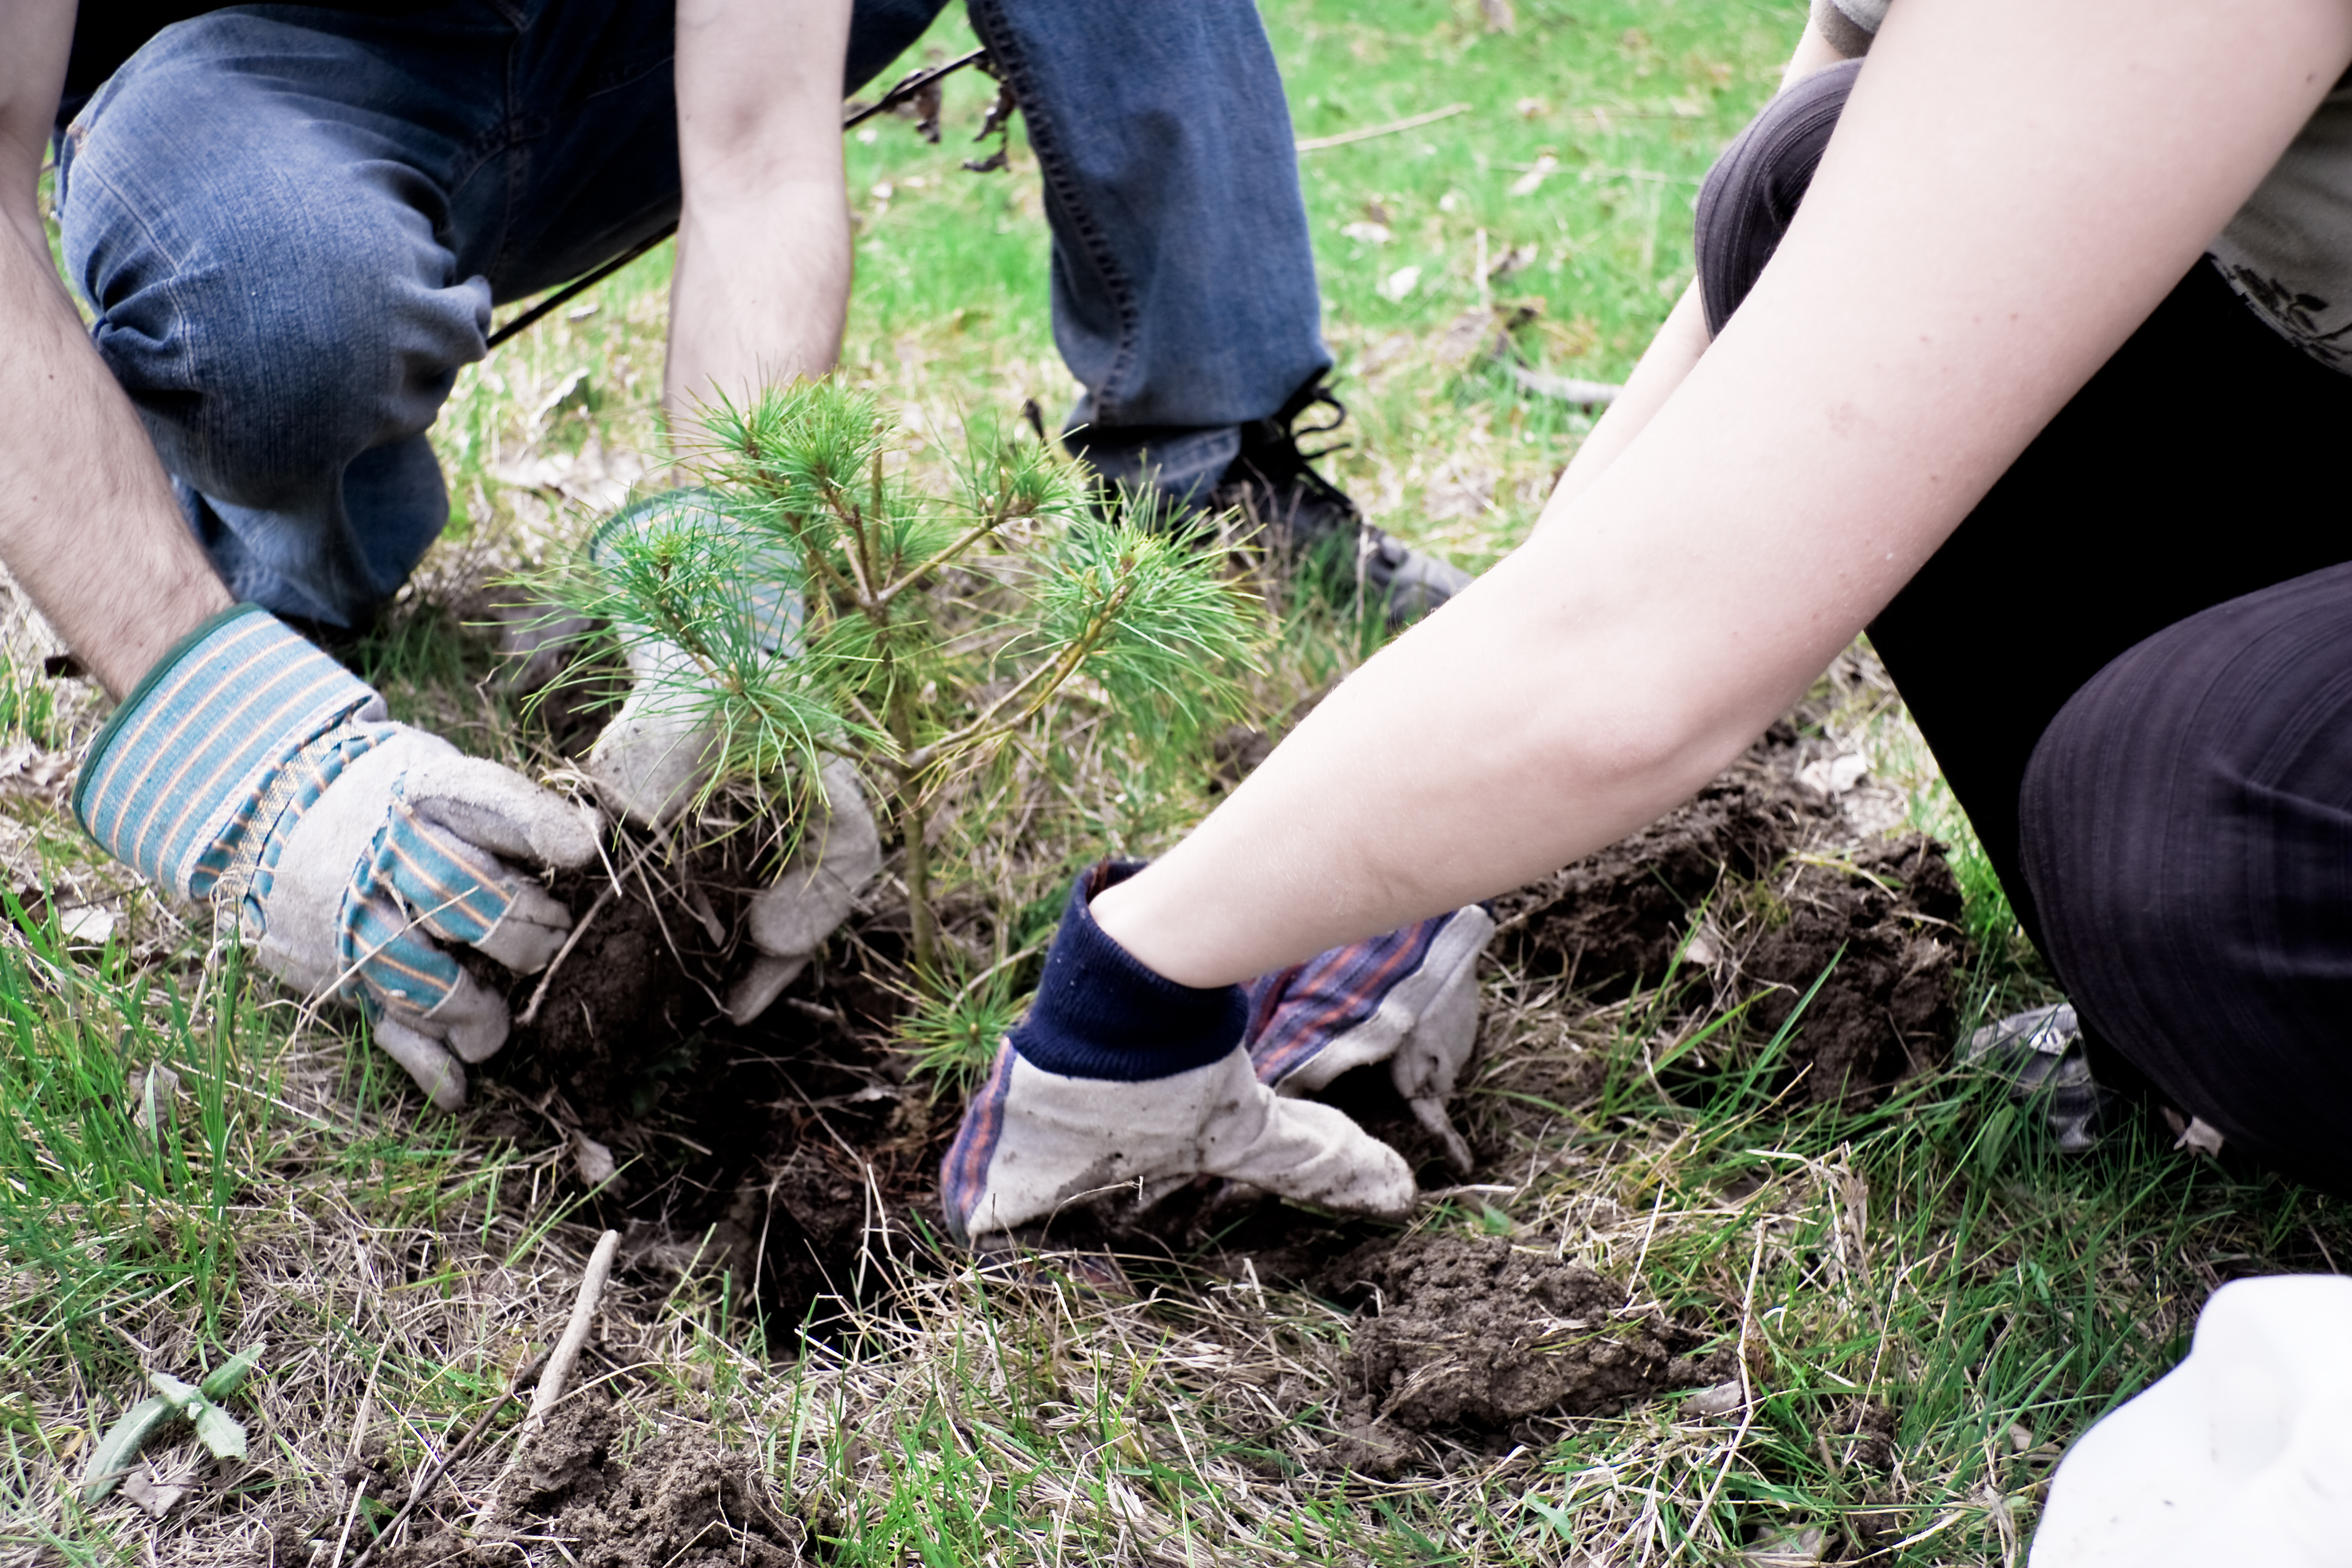 File:Tree planting 001.jpg - Wikimedia Commons